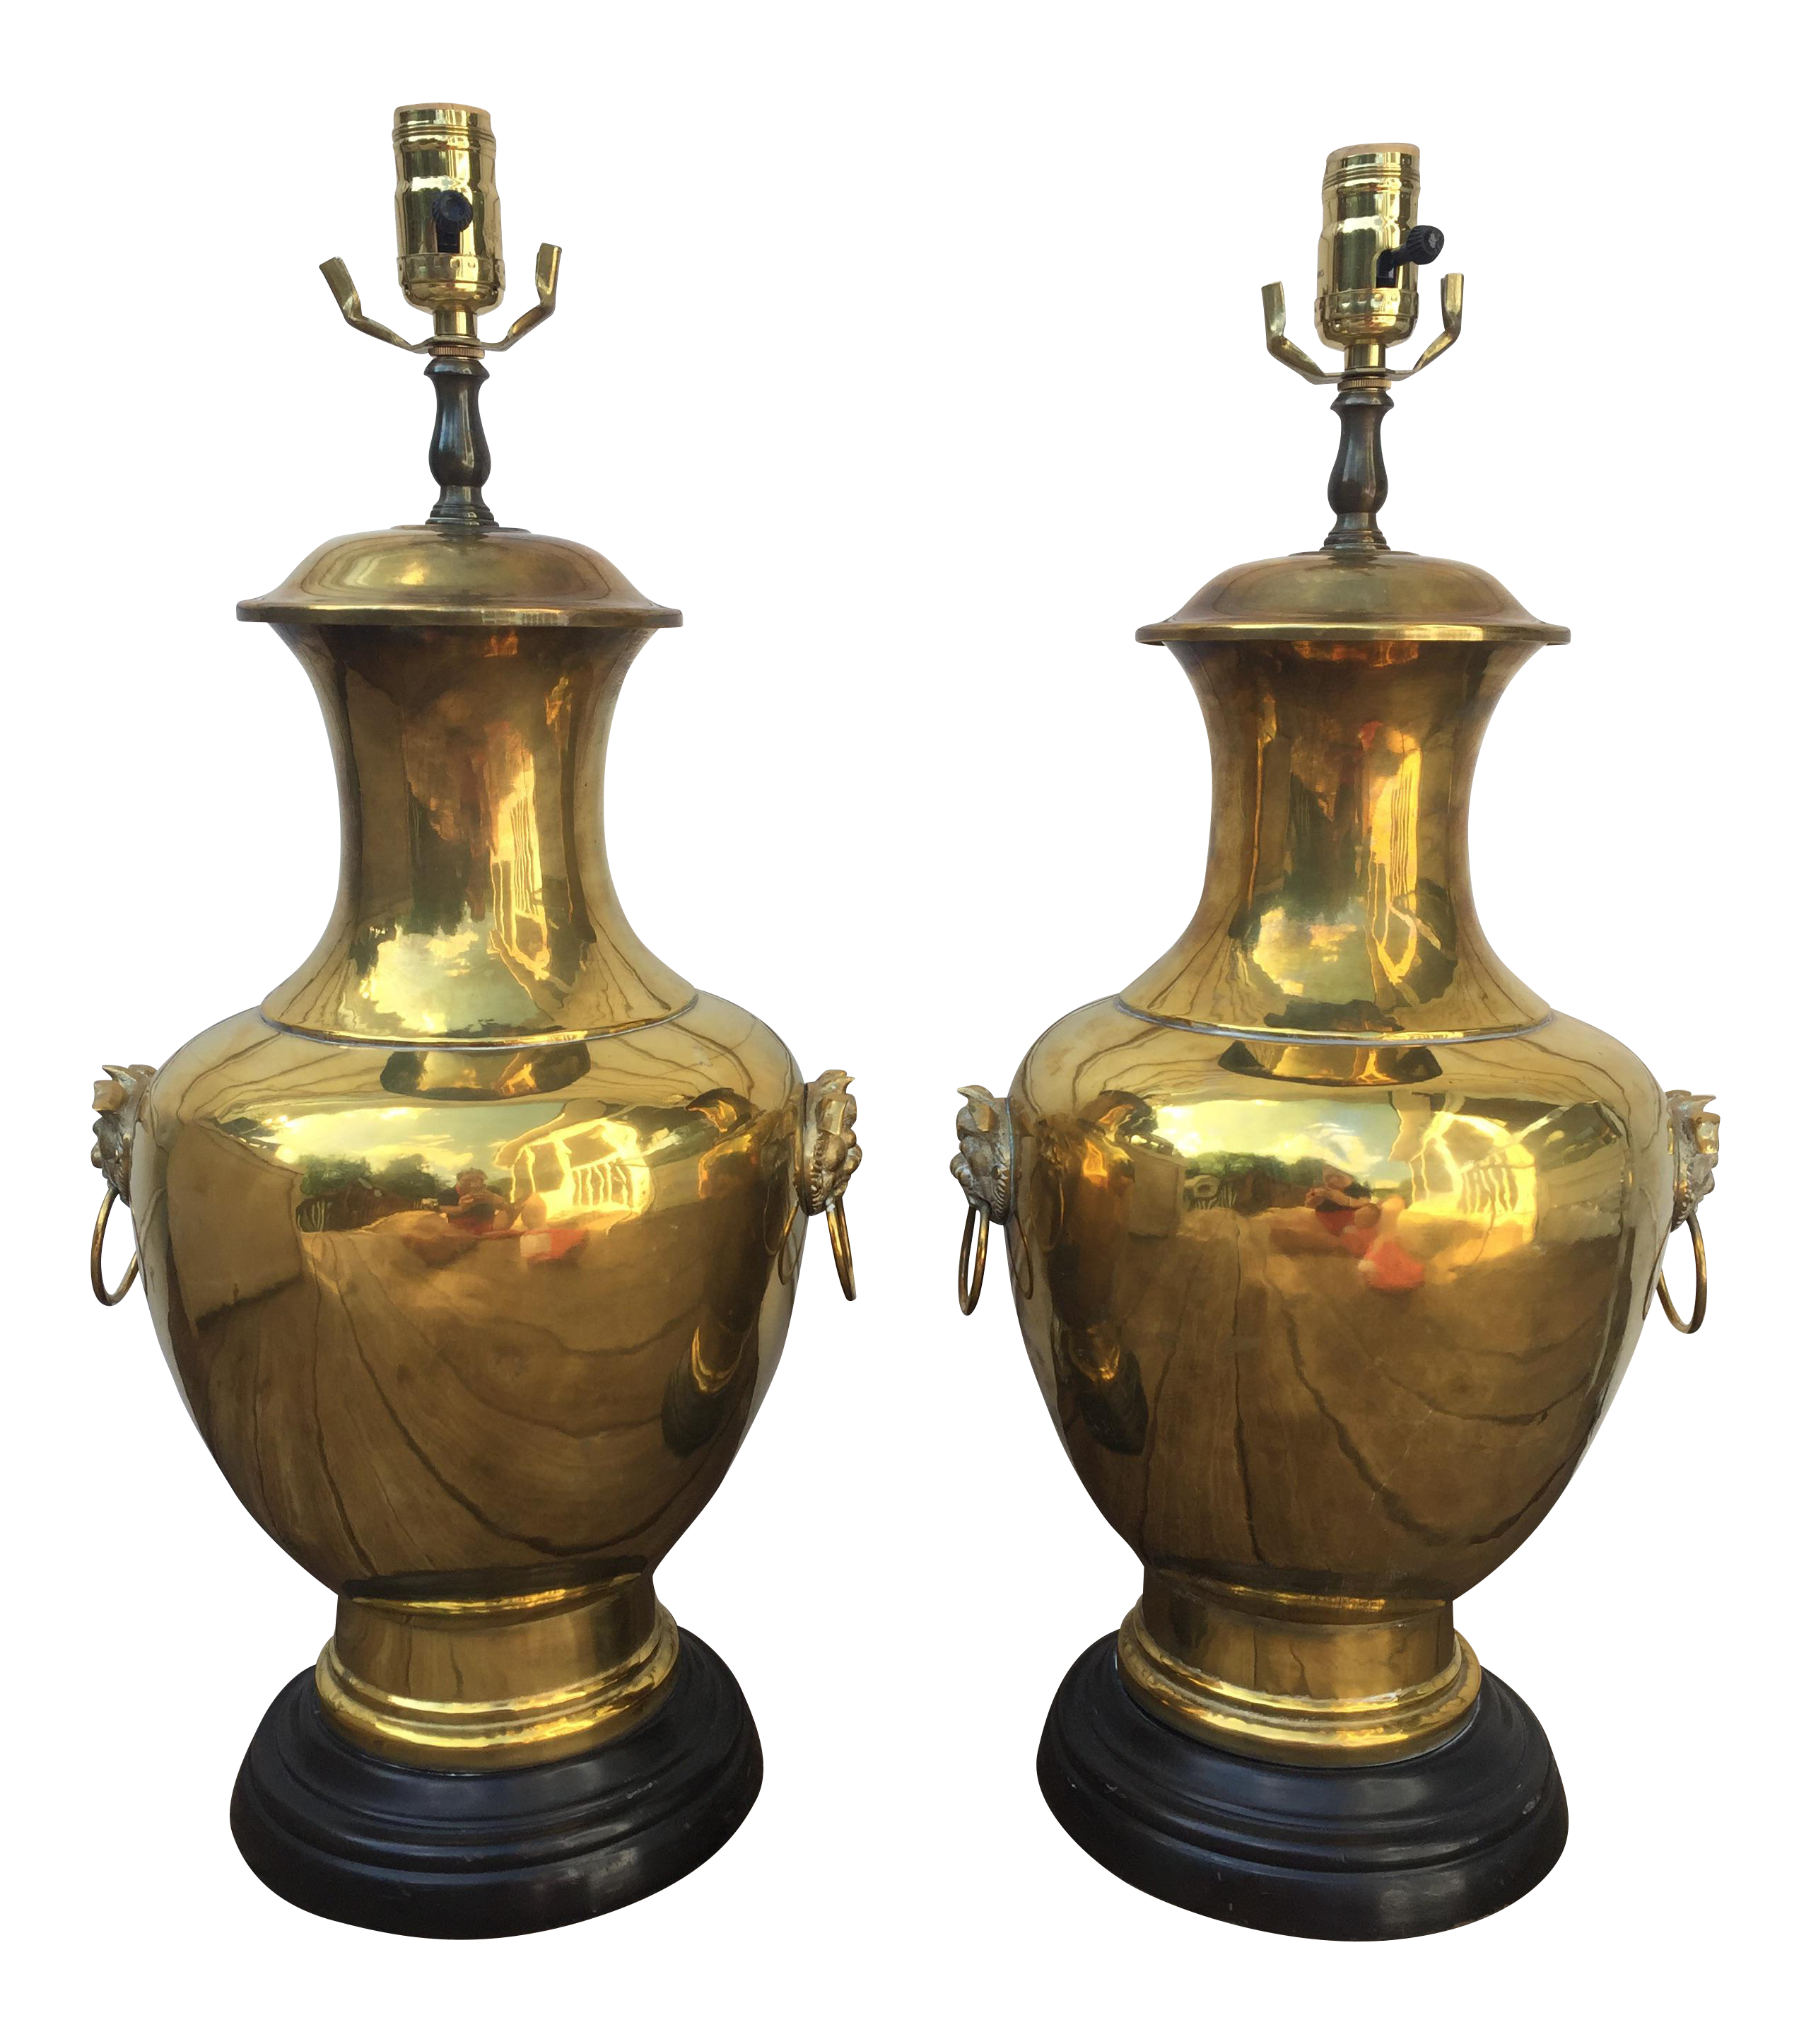 Stunning And Stately Pair Of Vintage Brass Urn Table Lamps With Decorative Dual Sided Foo Dog Ring Handles The Classic Hollywood Dog Lamp Beautiful Lamp Lamp